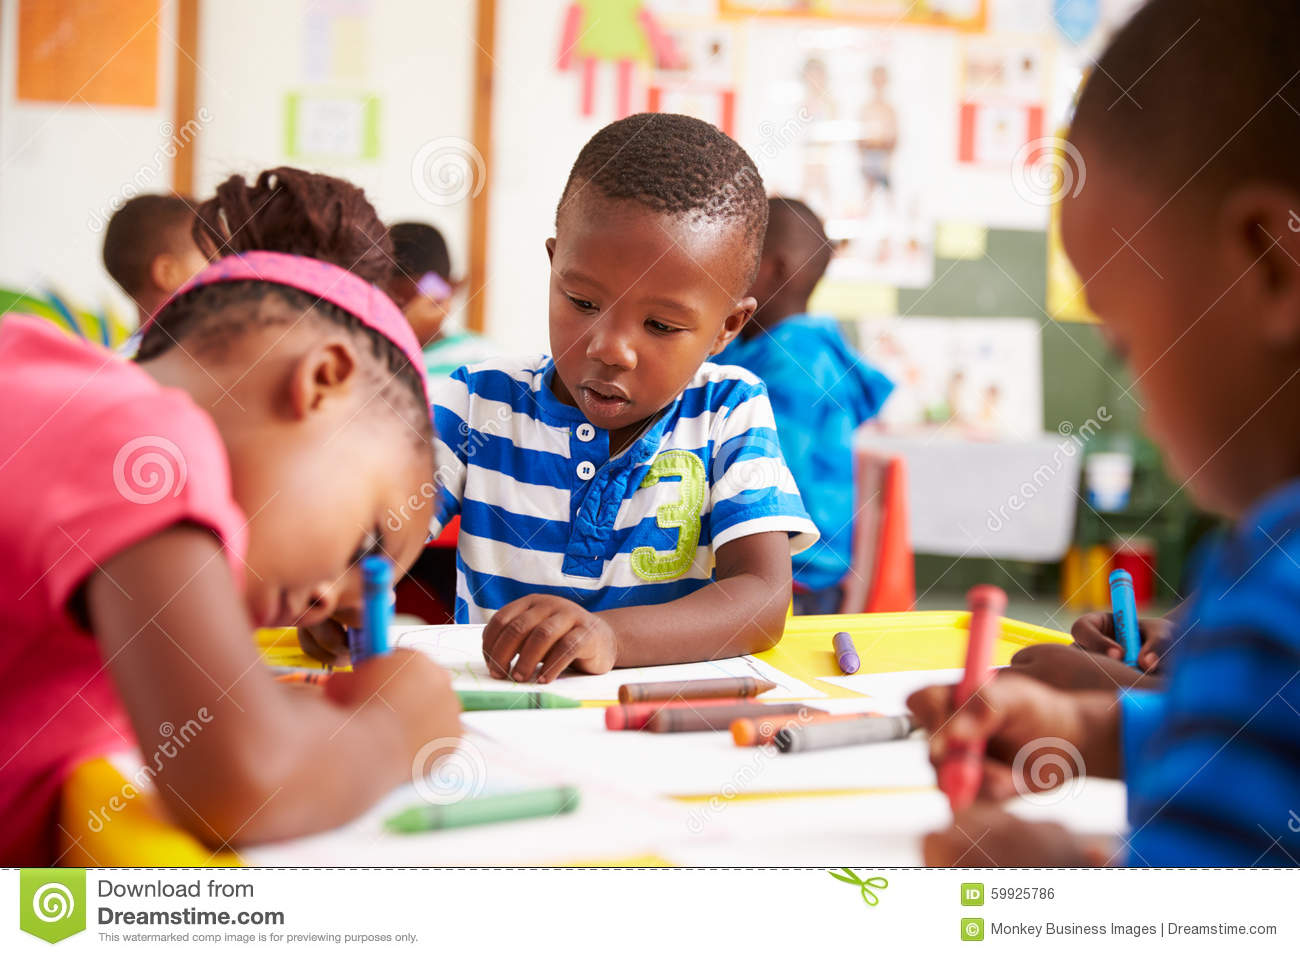 the disadvantages of baby sitting children and young people essay The disadvantages of baby sitting children and young people essay babysitters can range in age, tending to be in their pre-teens/teens, ages 11-19, yet it is not uncommon for students in their 20s to take.